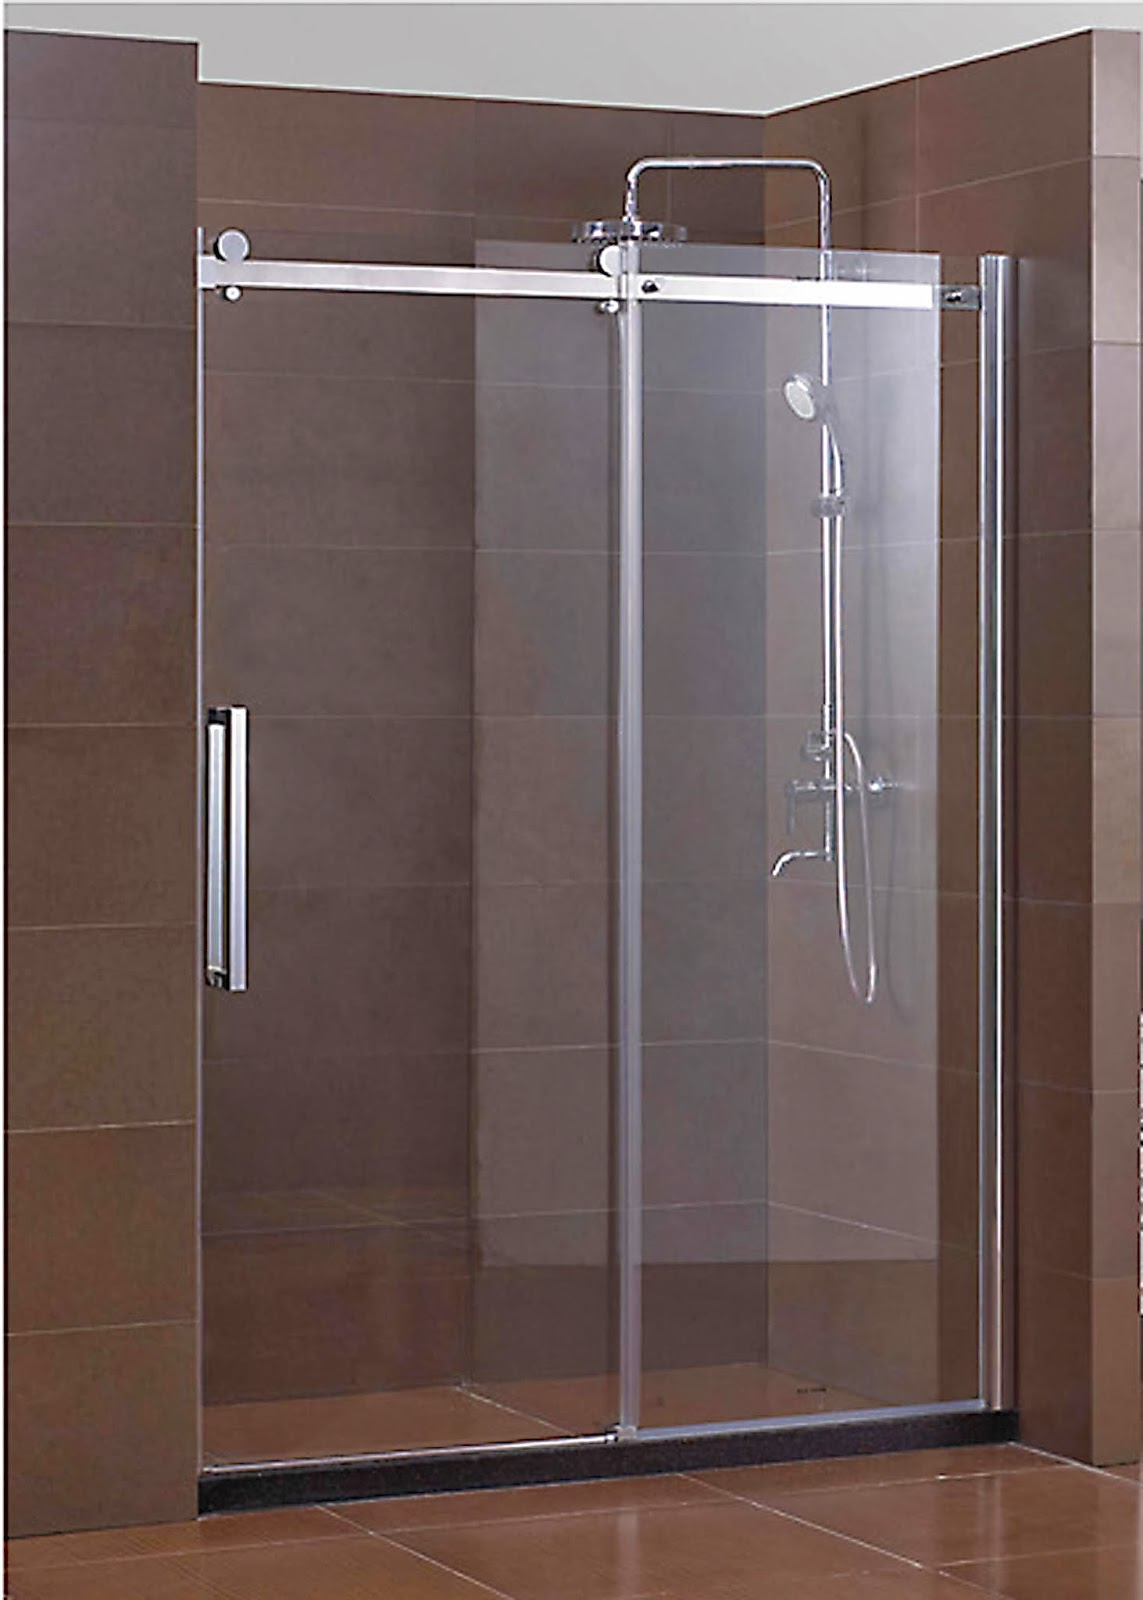 Palmers glass frameless shower screens could give you Sliding glass shower doors